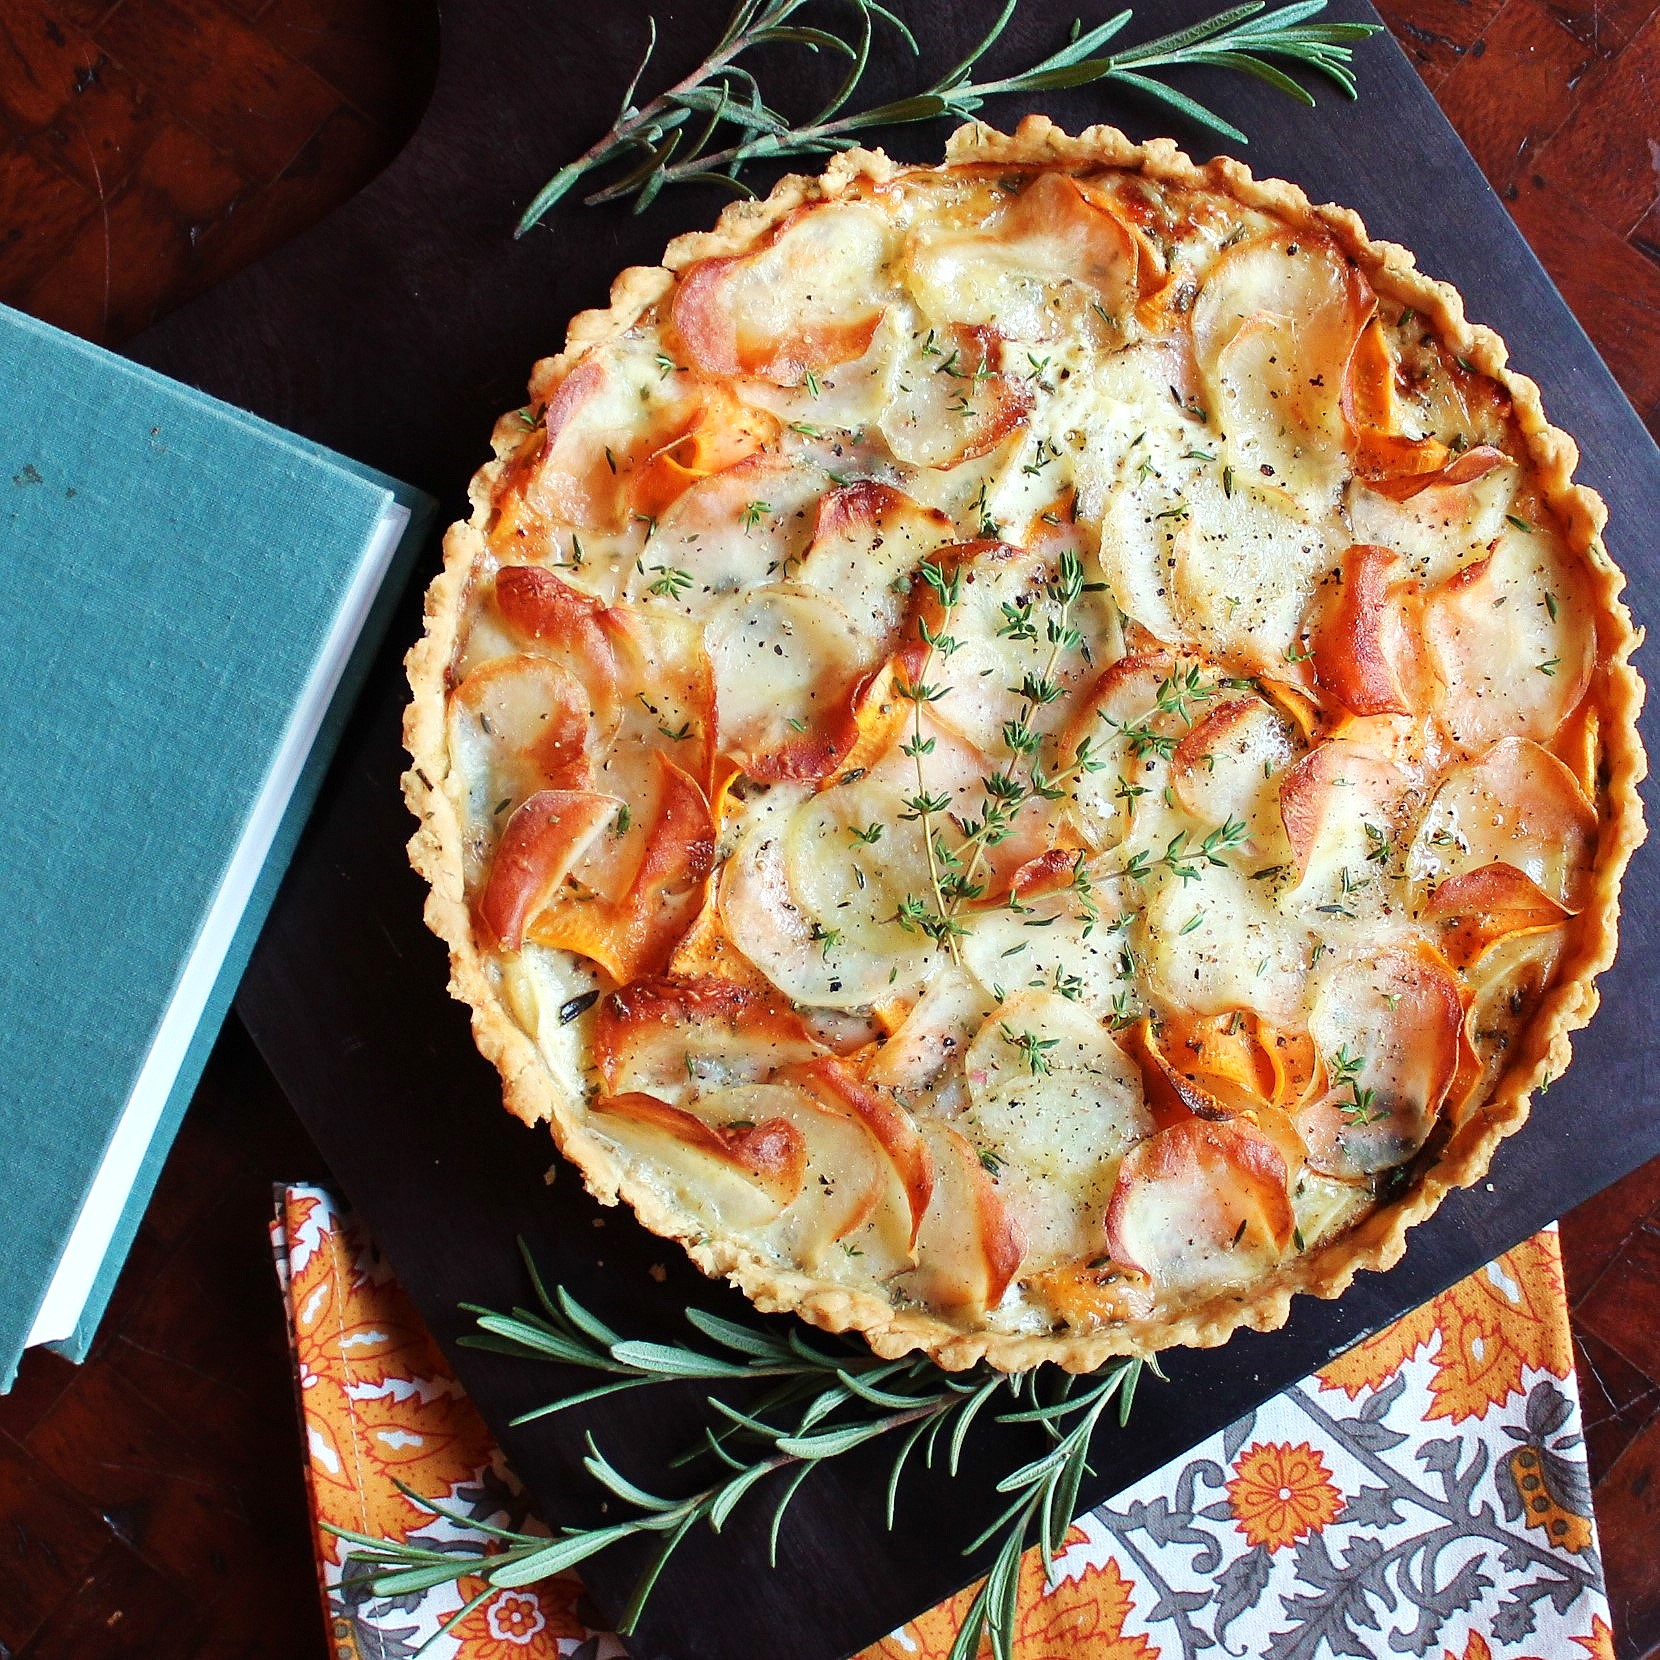 A potato and herb tart